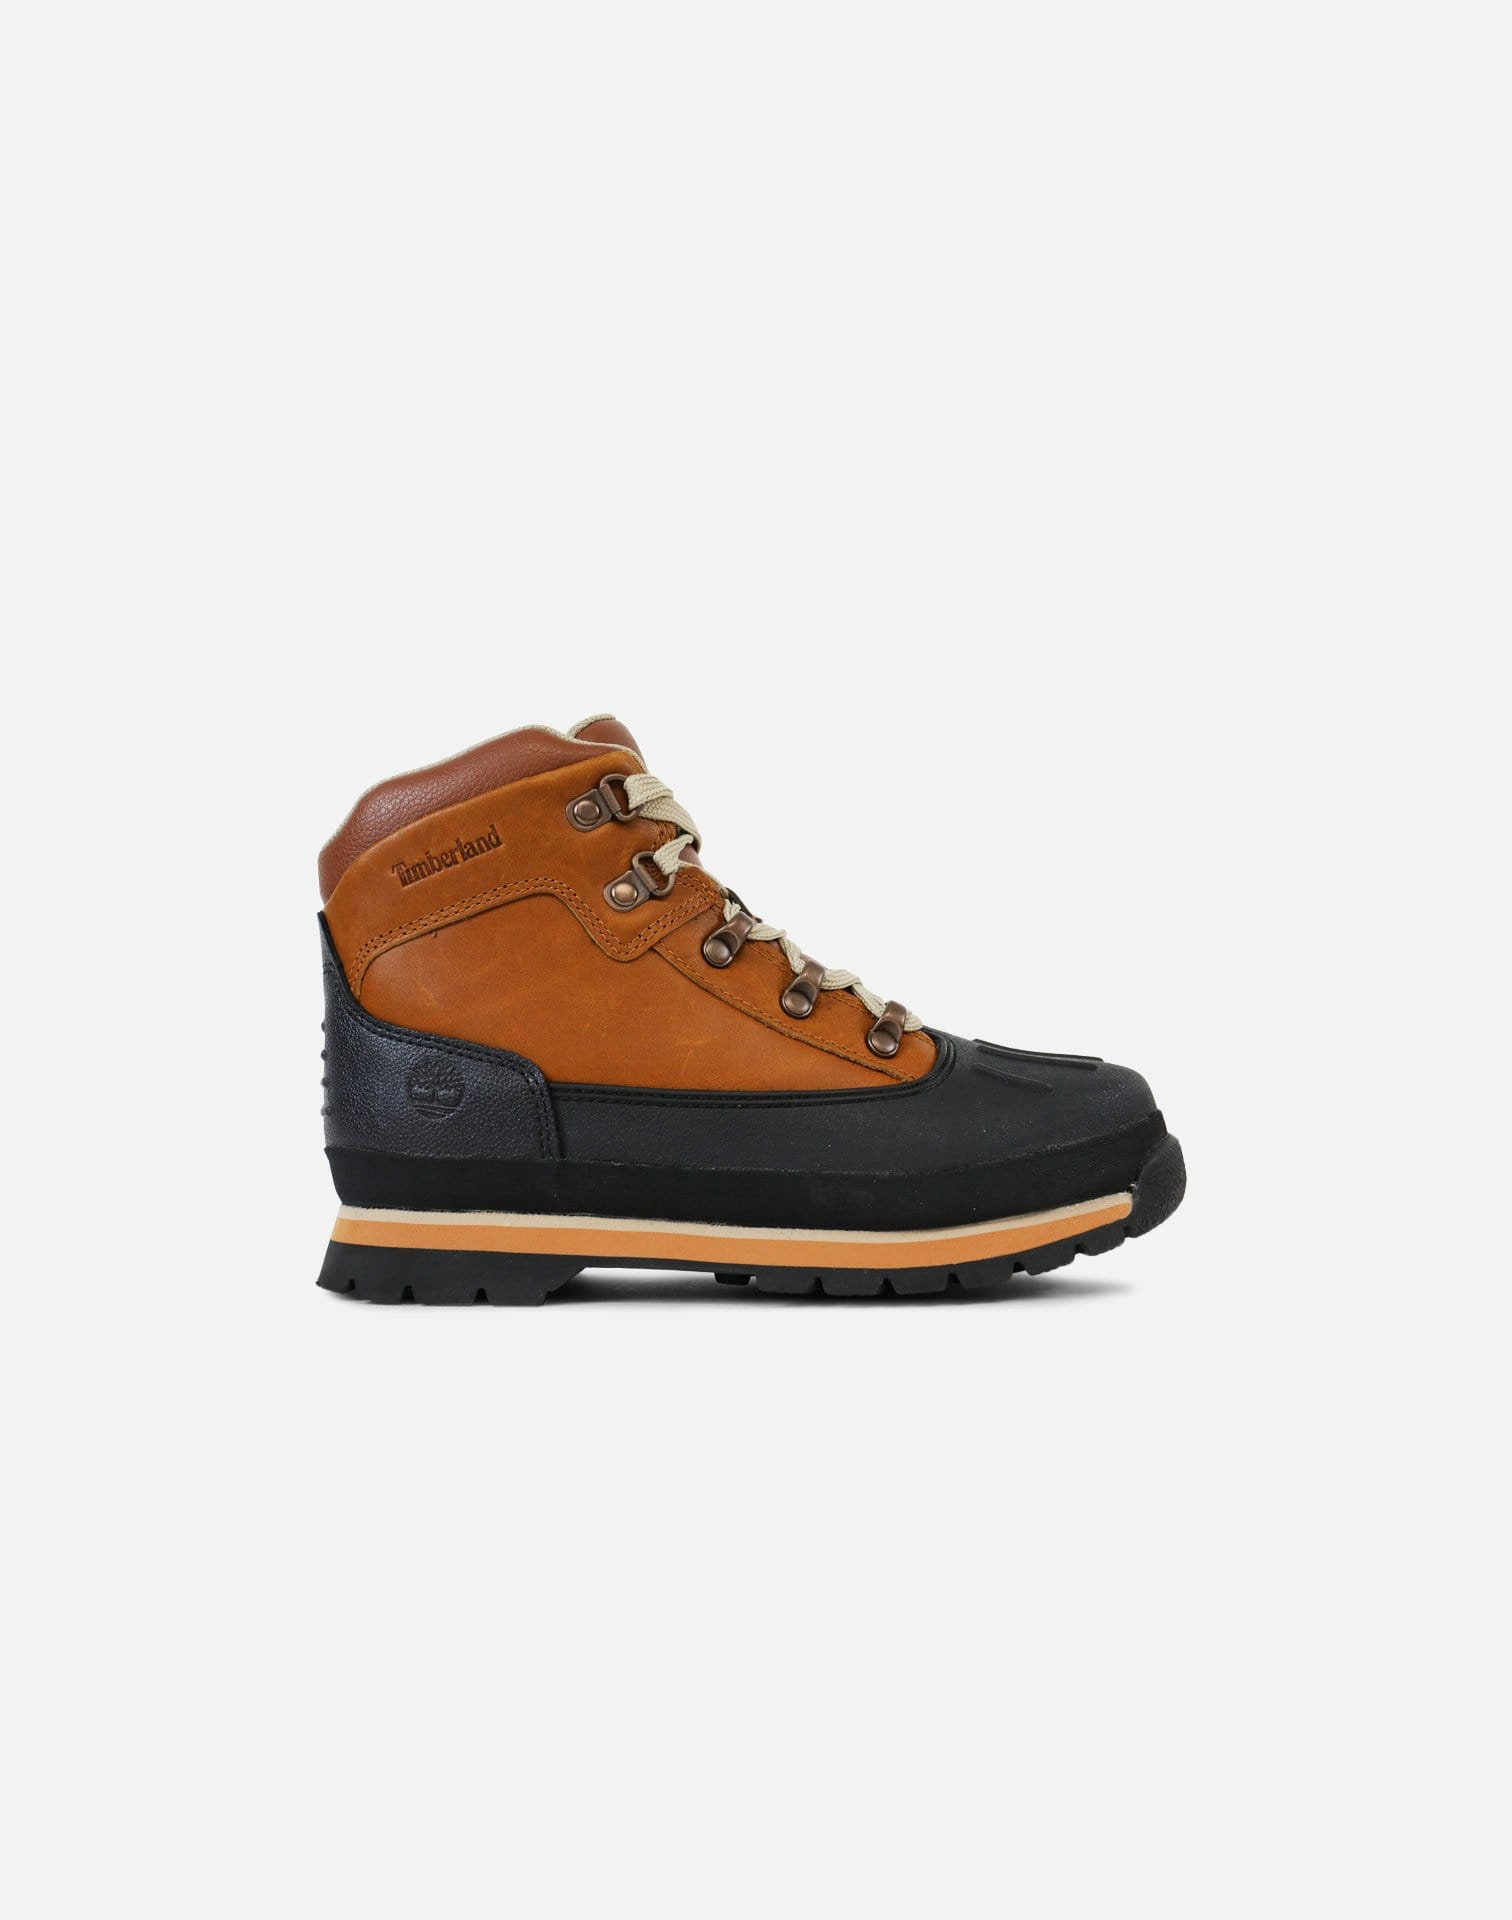 Timberland Shell Toe Euro Hiker Boots Pre-School (Burnt Orange/Black)